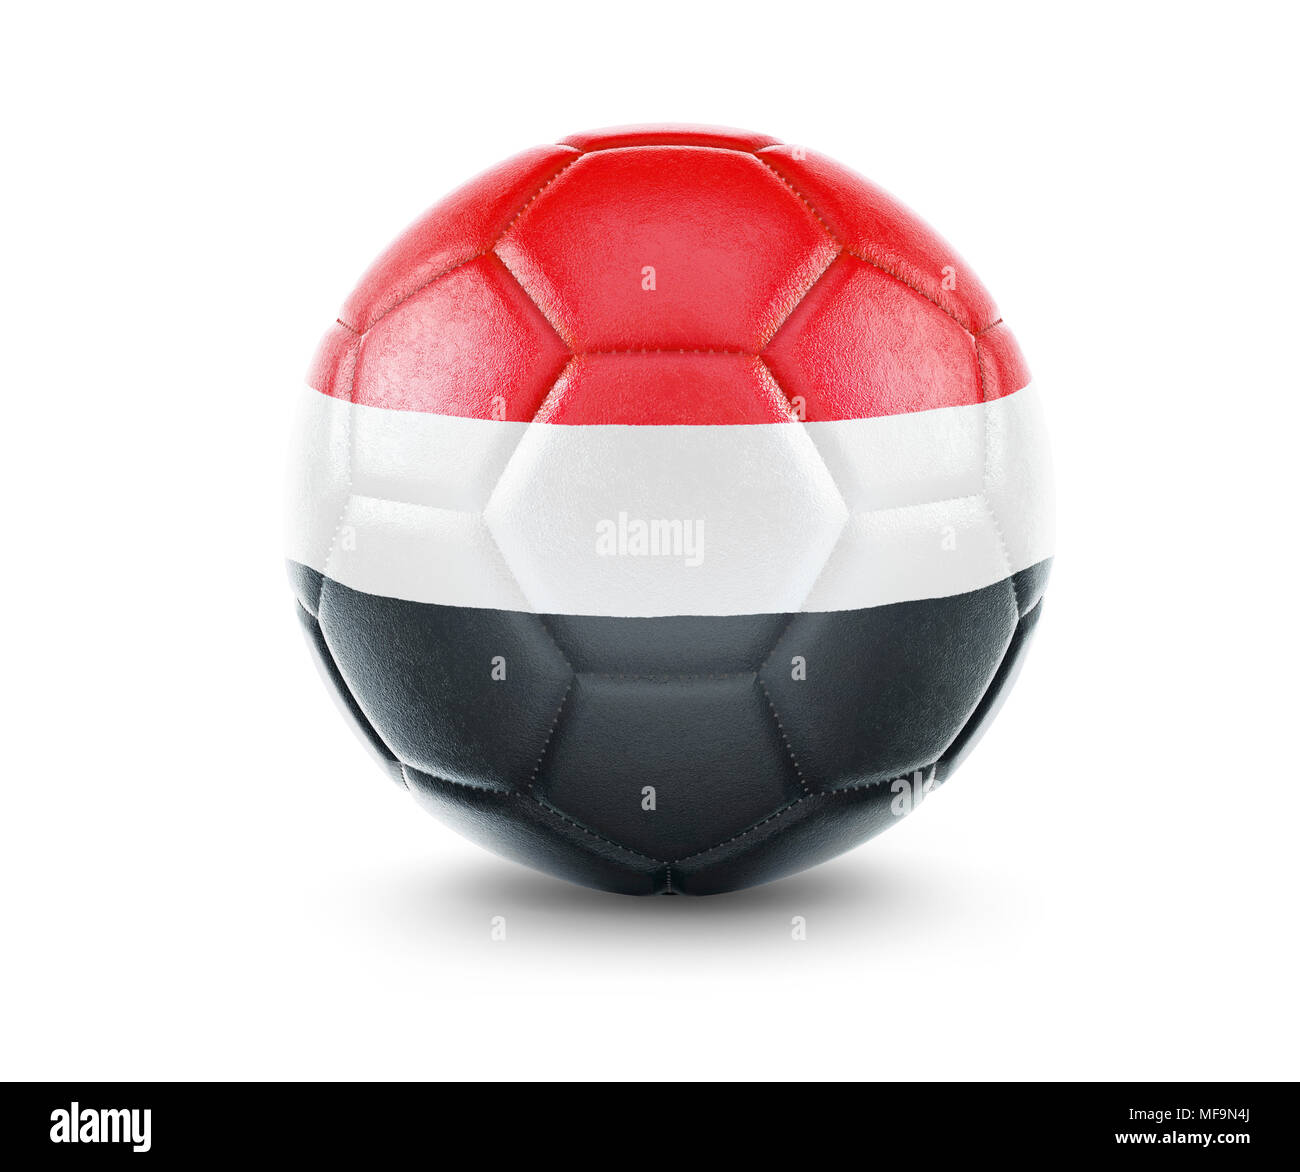 High qualitiy rendering of a soccer ball with the flag of Yemen.(series) - Stock Image